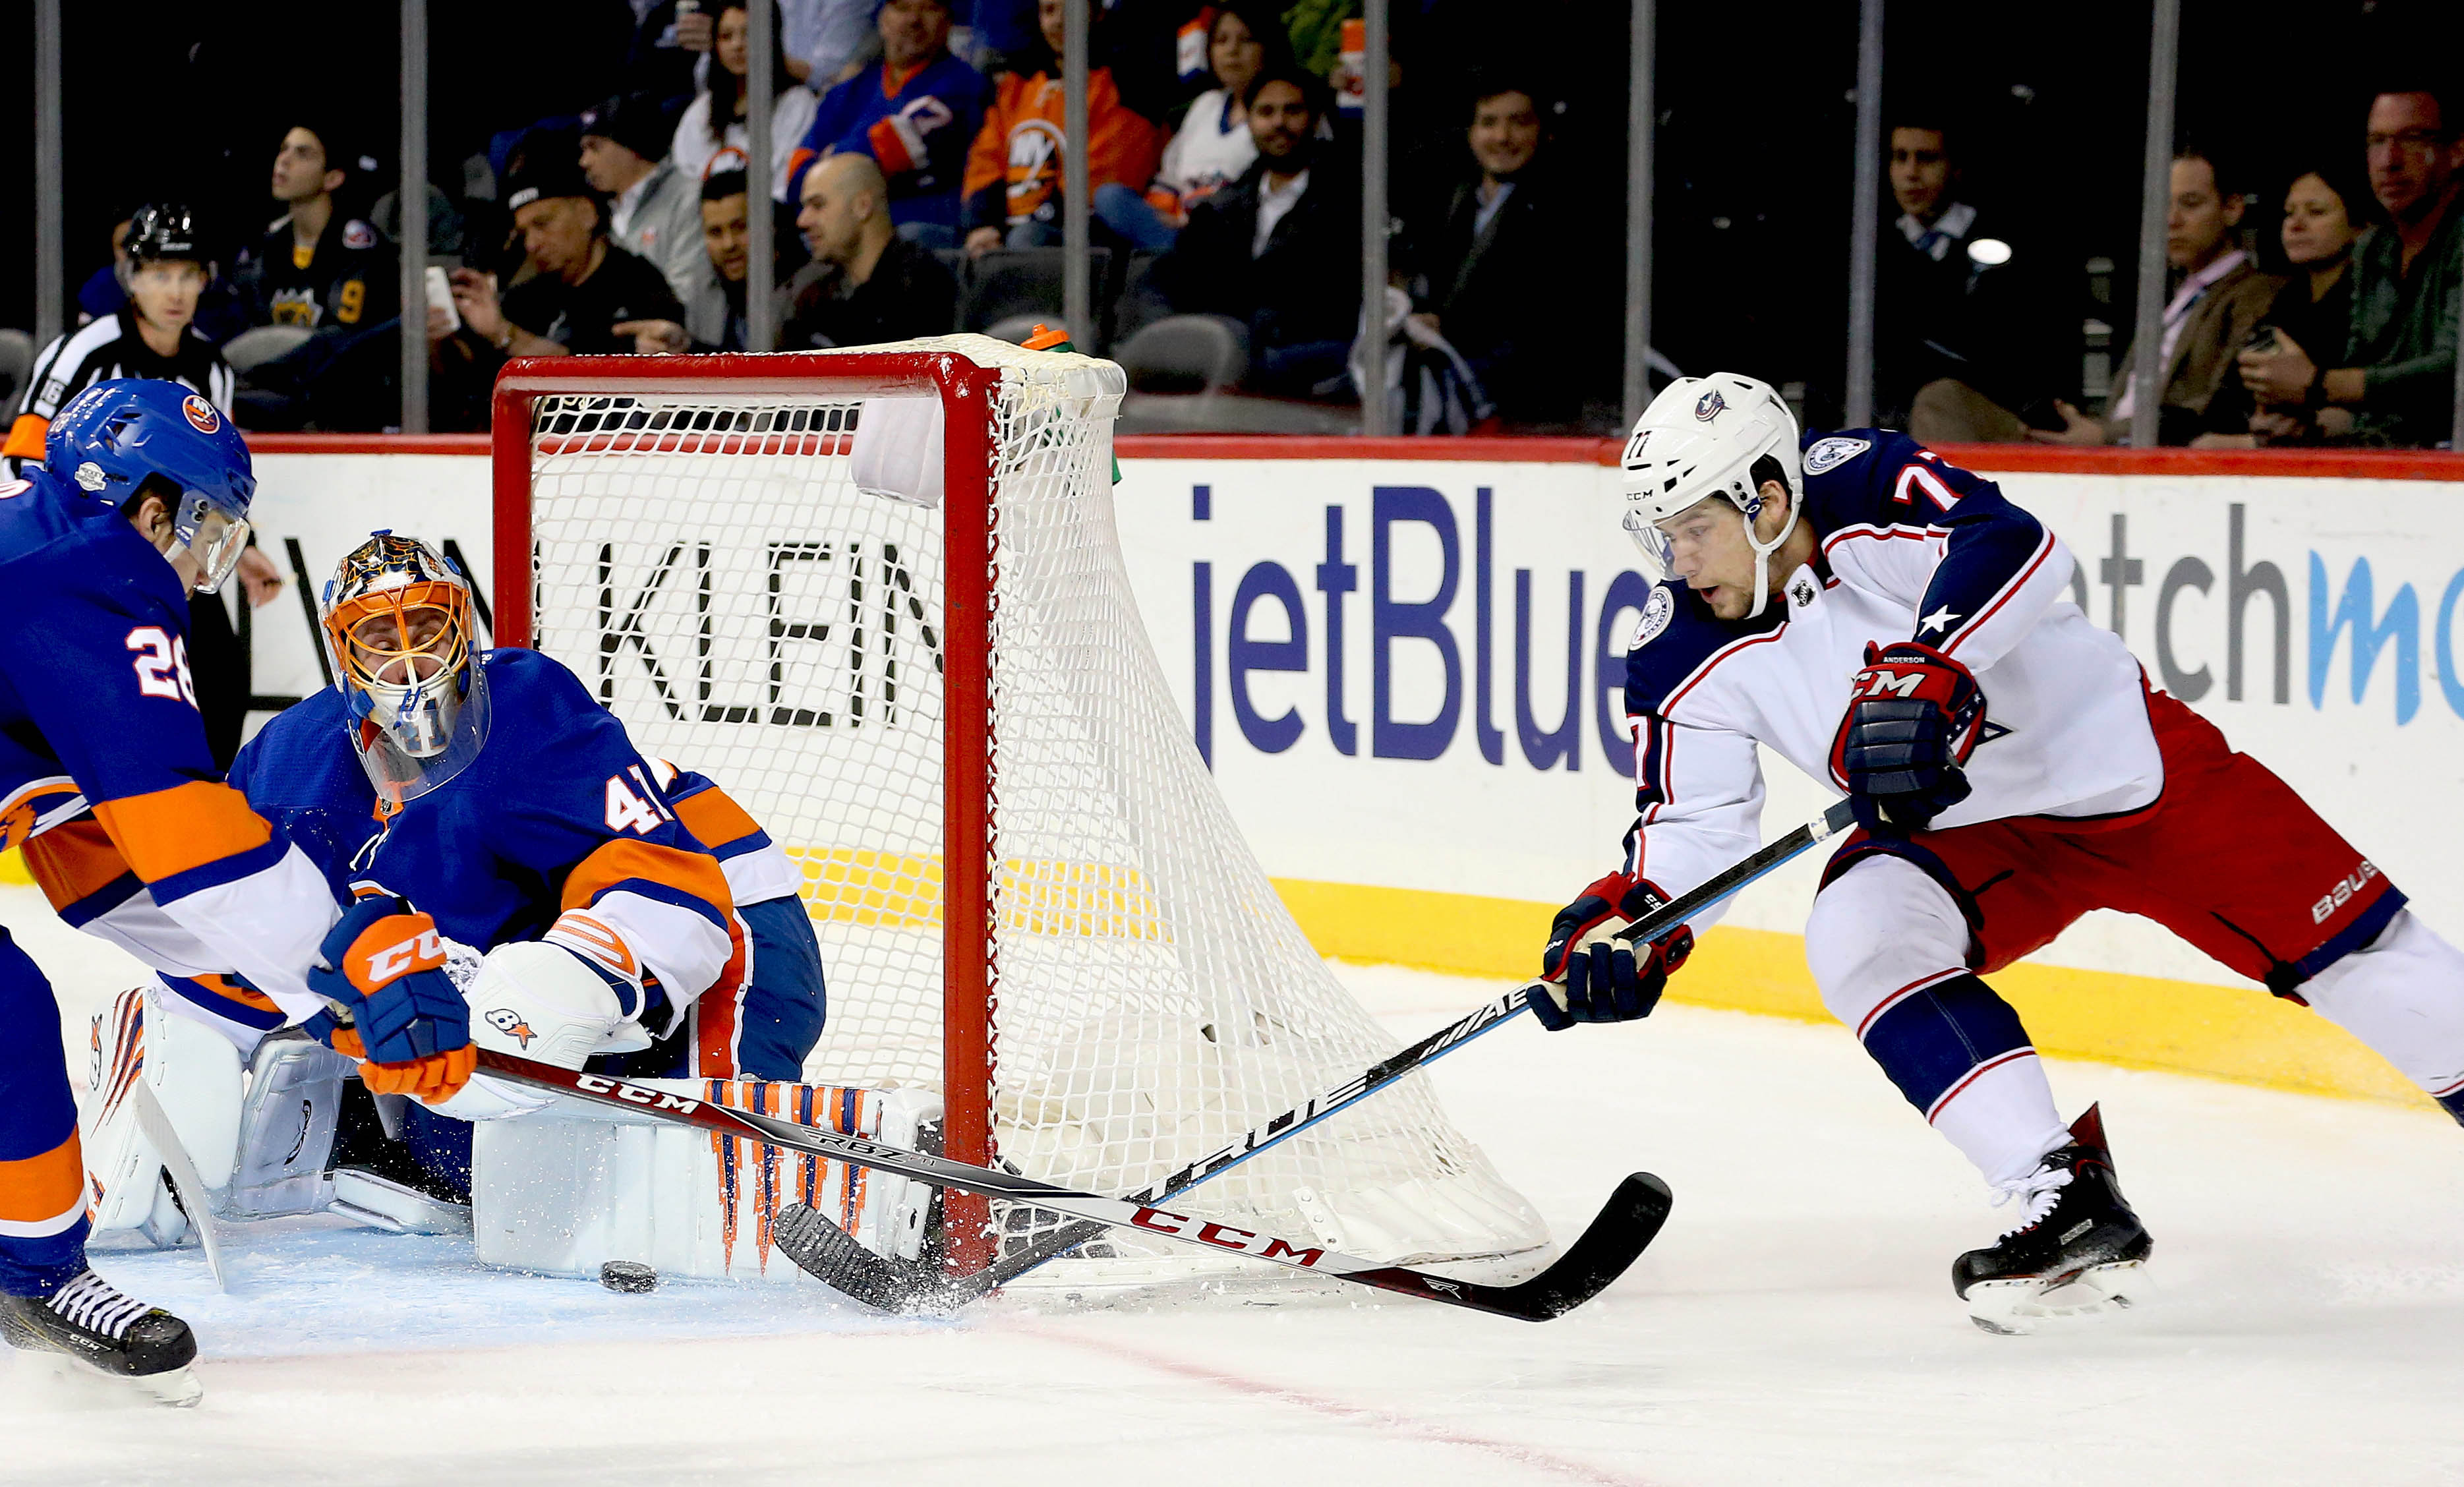 Feb 13, 2018; Brooklyn, NY, USA; New York Islanders goaltender Jaroslav Halak (41) makes a save on a wrap around shot by Columbus Blue Jackets right wing Josh Anderson (77) during the first period at Barclays Center. Mandatory Credit: Andy Marlin-USA TODAY Sports